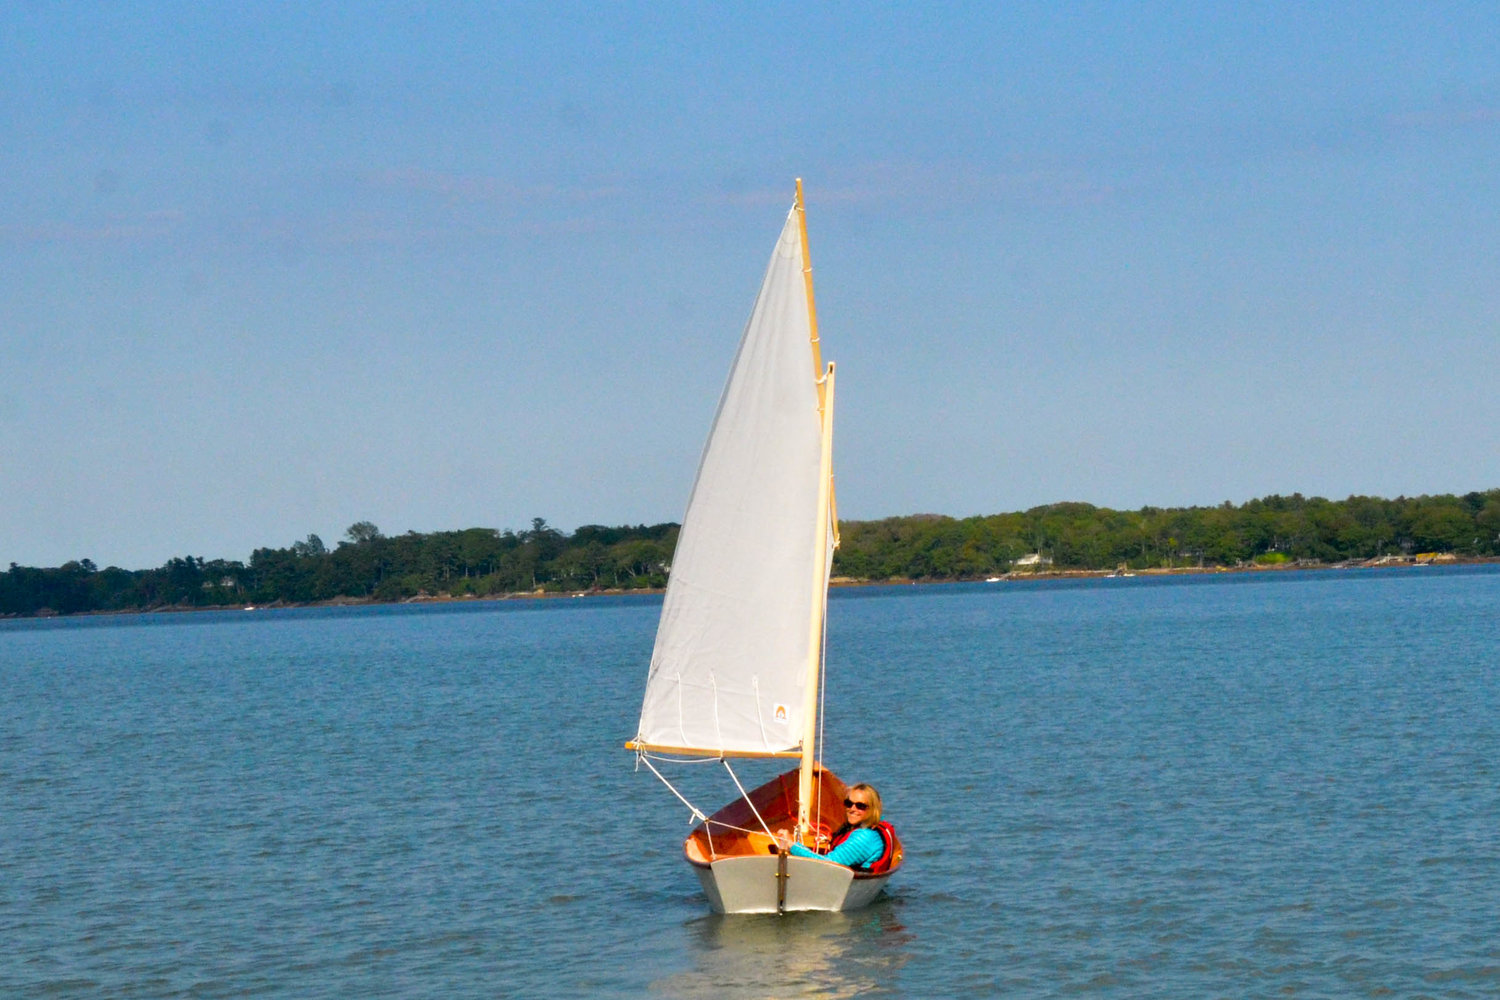 Echo Bay Dory Skiff Chase Small Craft